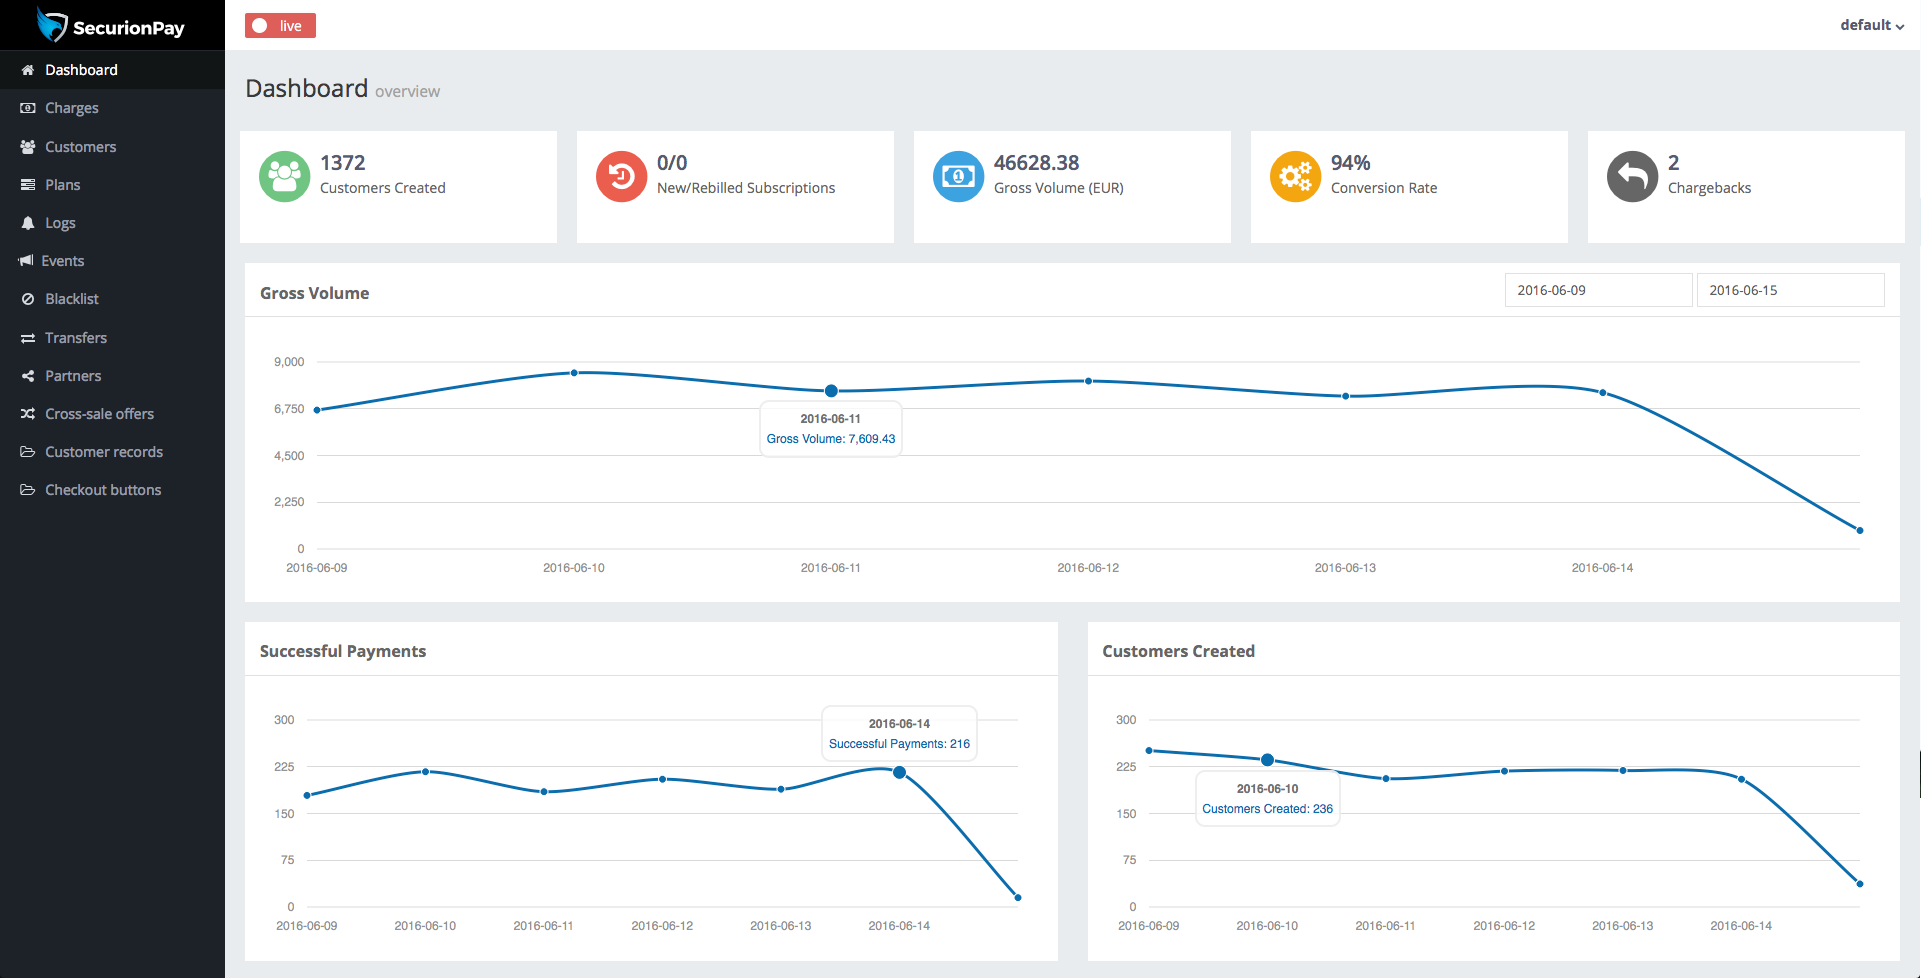 SecurionPay's dashboard